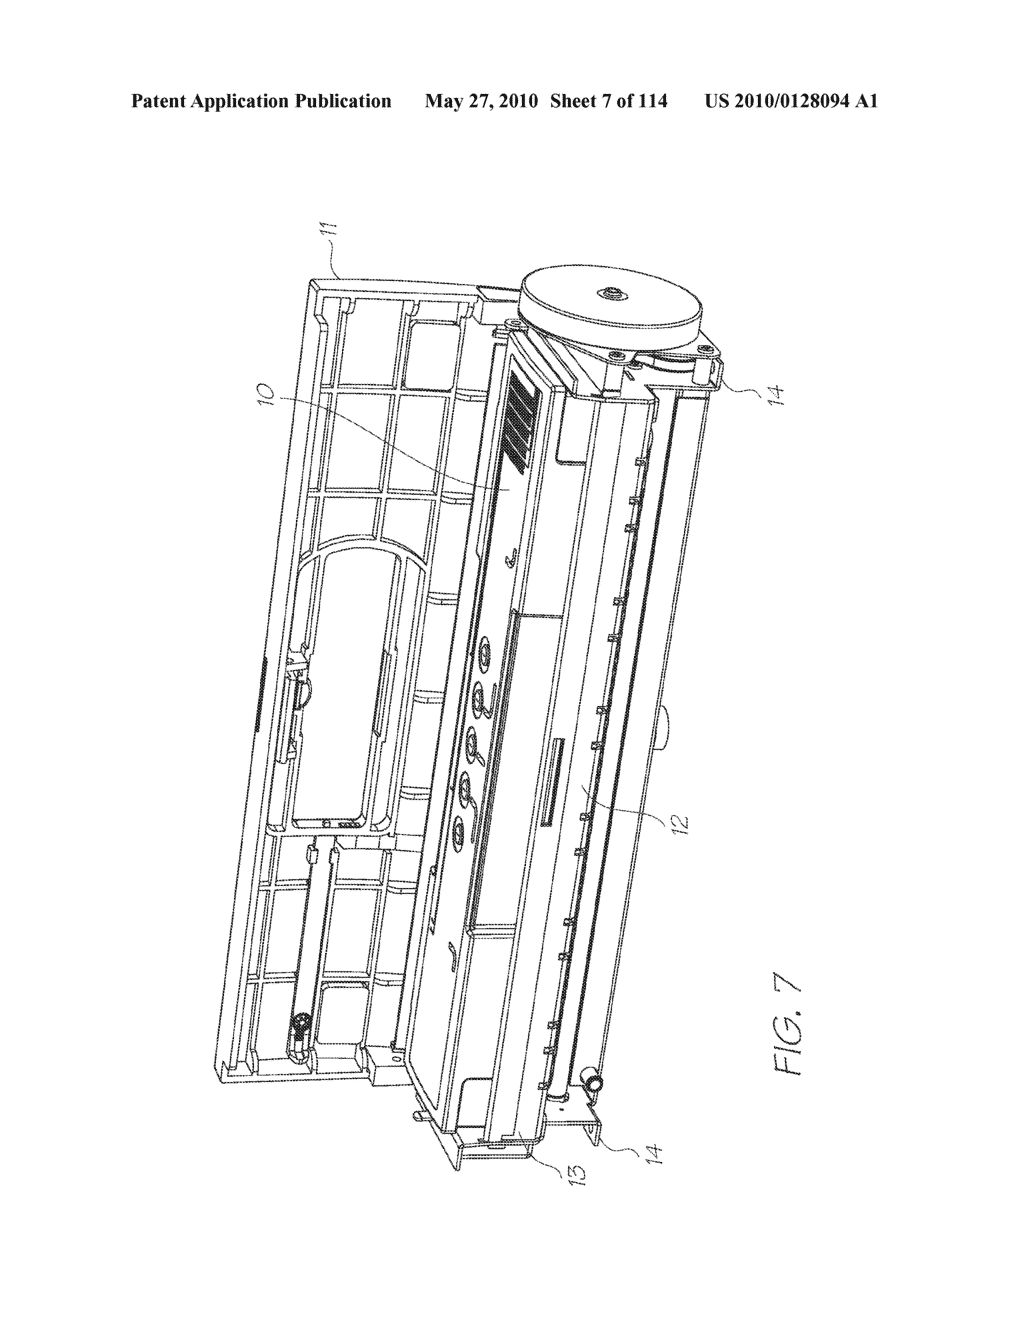 Print Engine With A Refillable Printer Cartridge And Ink Refill Port - diagram, schematic, and image 08